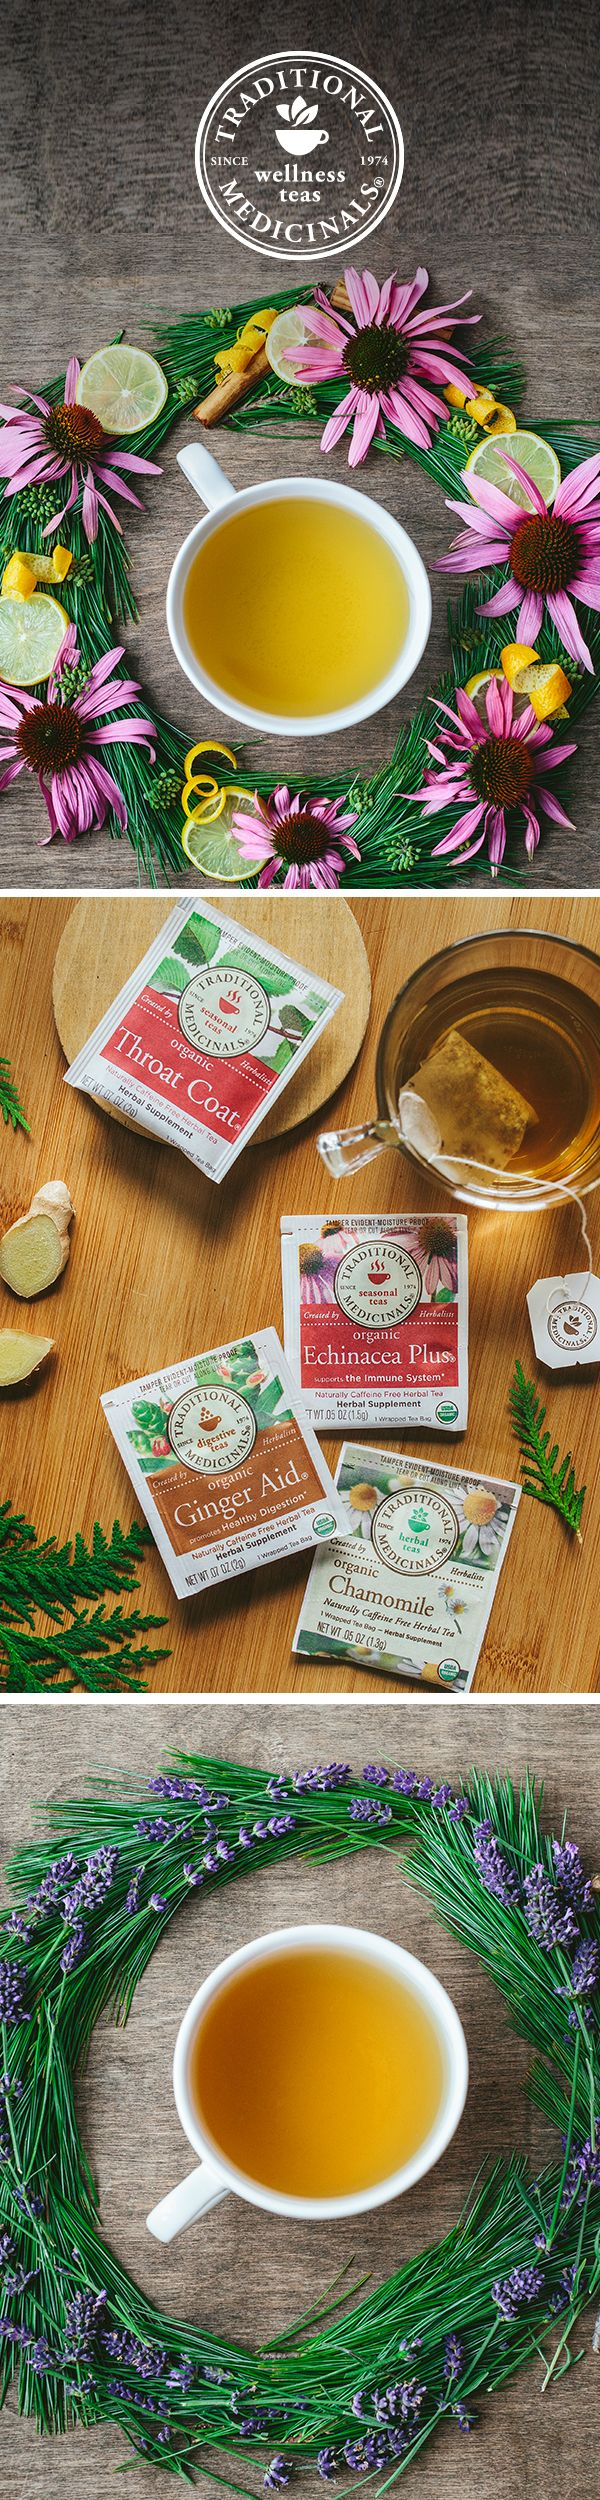 Nestling in for winter? Herbal teas make for cozy companions during one of the busiest and most taxing seasons. Our herbalists created Throat Coat, which is made with slippery elm to support seasonal wellness, Echinacea Plus to help boost your immune system and calming Chamomile with Lavender to settle nerves. No matter what's in the forecast, there's a Traditional Medicinals tea to help you weather winter.